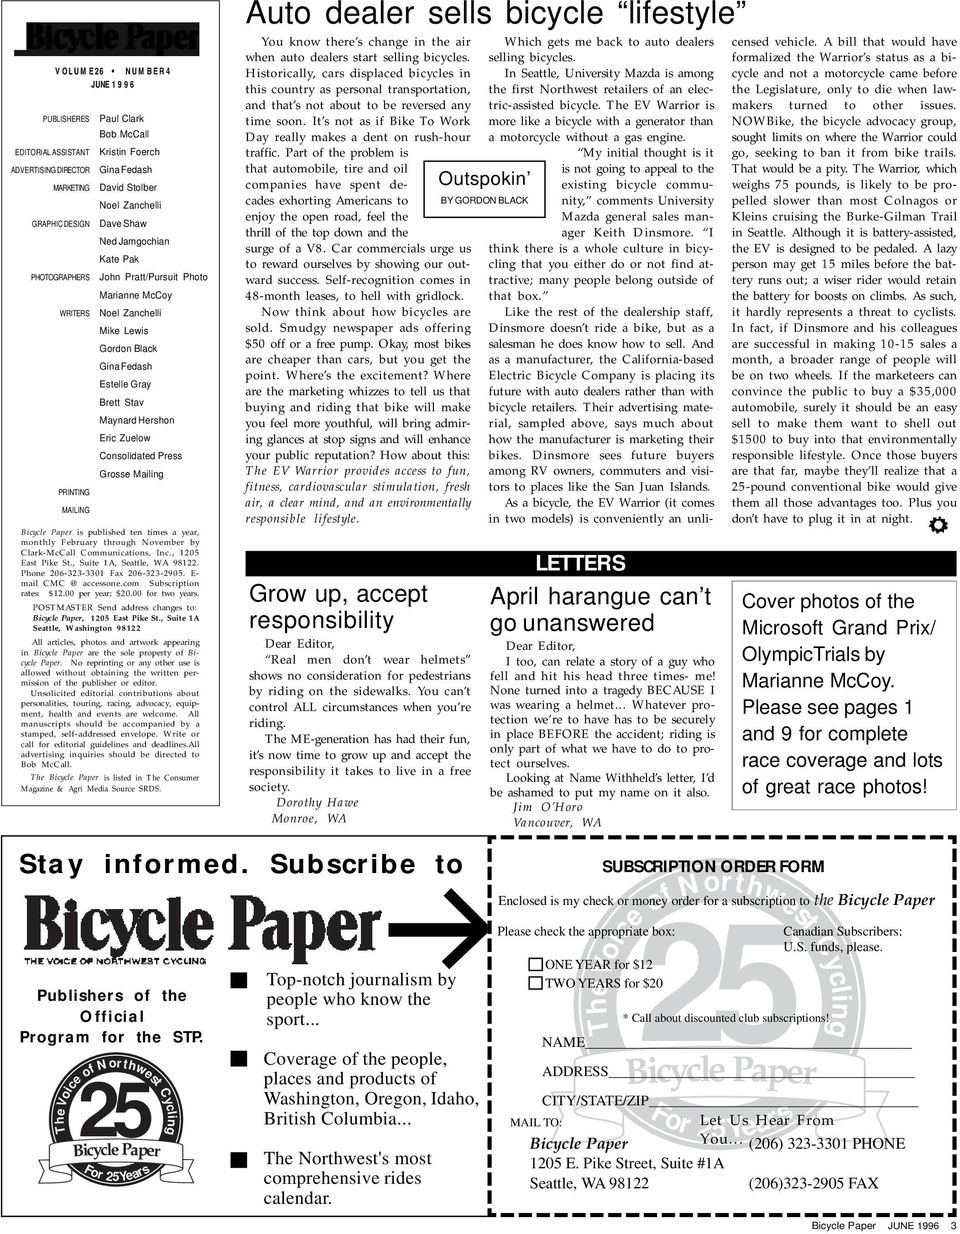 Press Grosse Mailing PRINTING MAILING Bicycle Paper is published ten times a year, monthly February through November by Clark-McCall Communications, Inc., 1205 East Pike St.